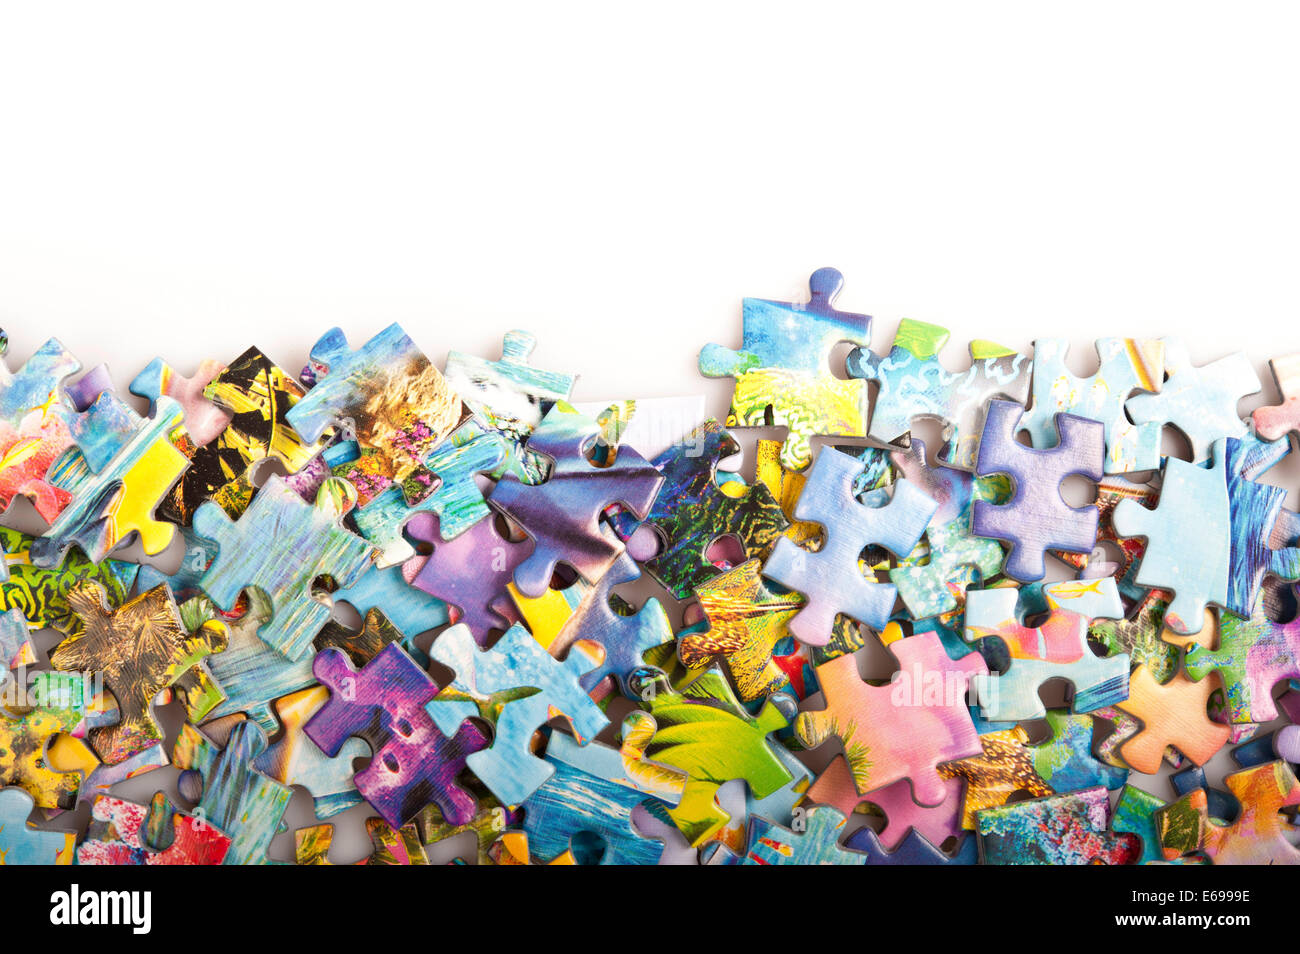 jigsaw puzzle pieces - Stock Image